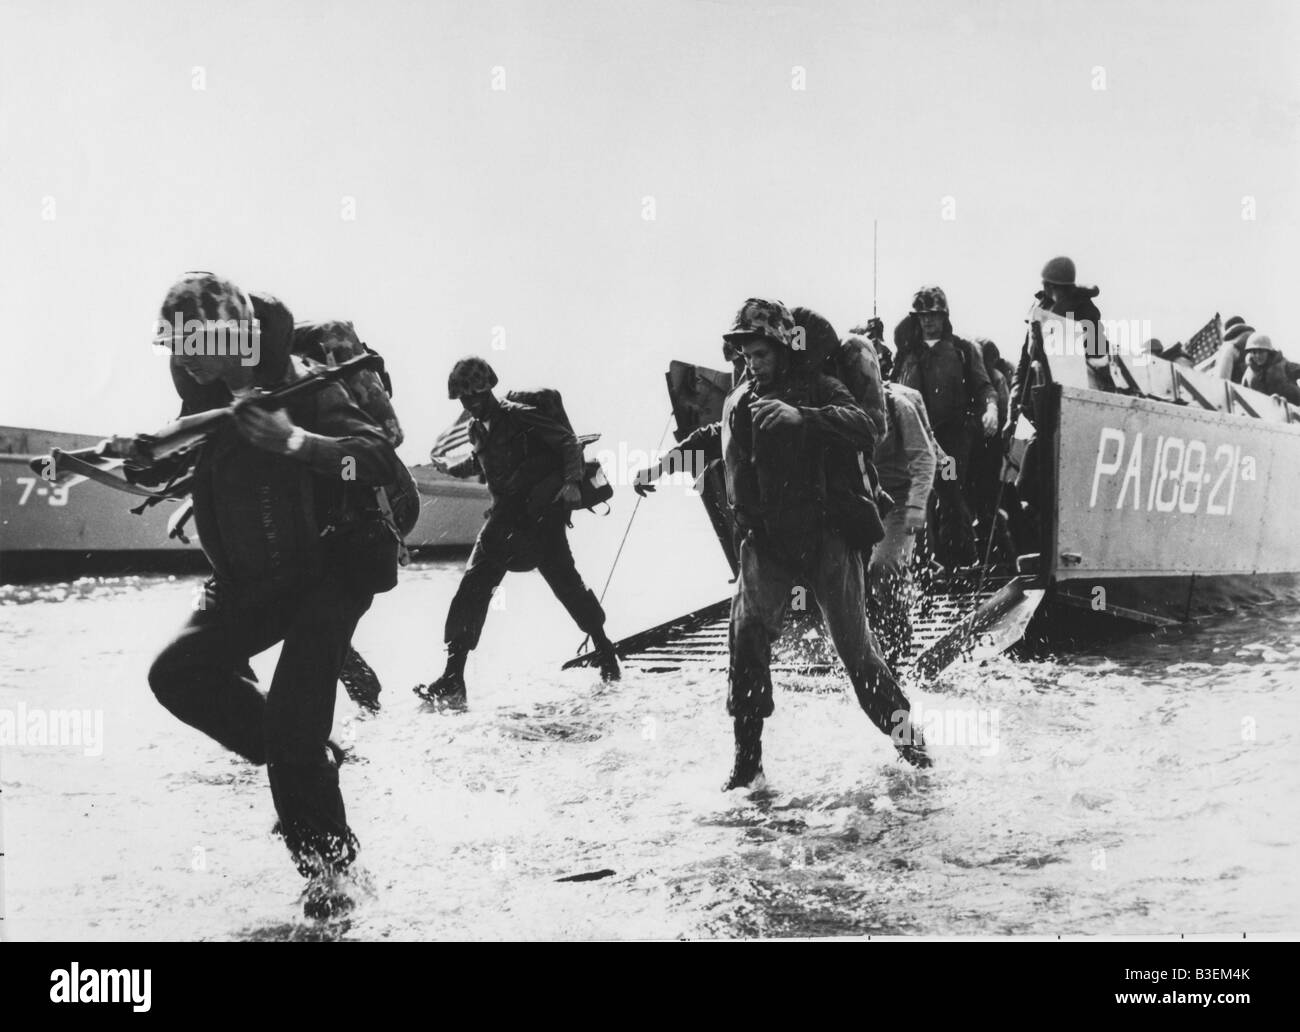 Allied invasion in Normandy 1944. - Stock Image